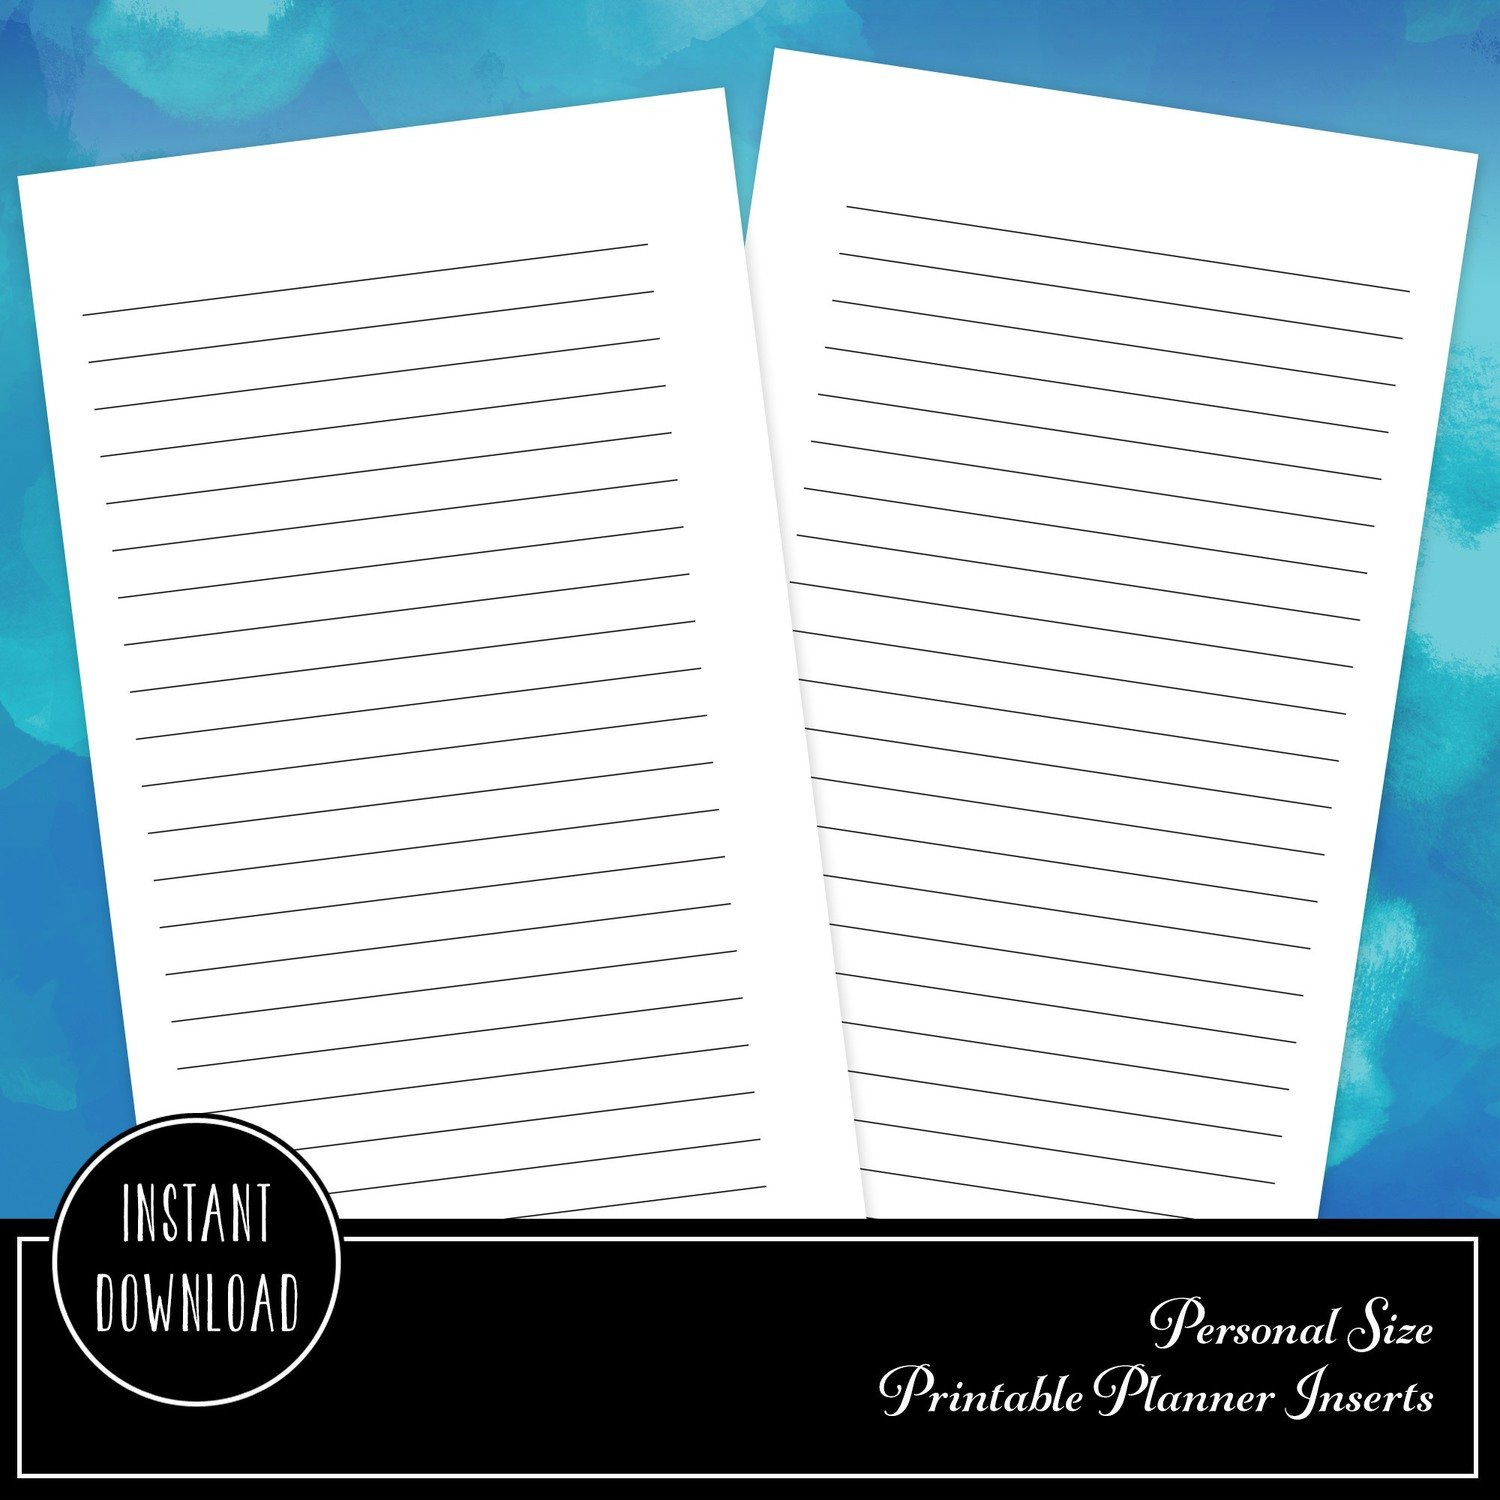 Note Lines Personal Size Printable Planner Inserts